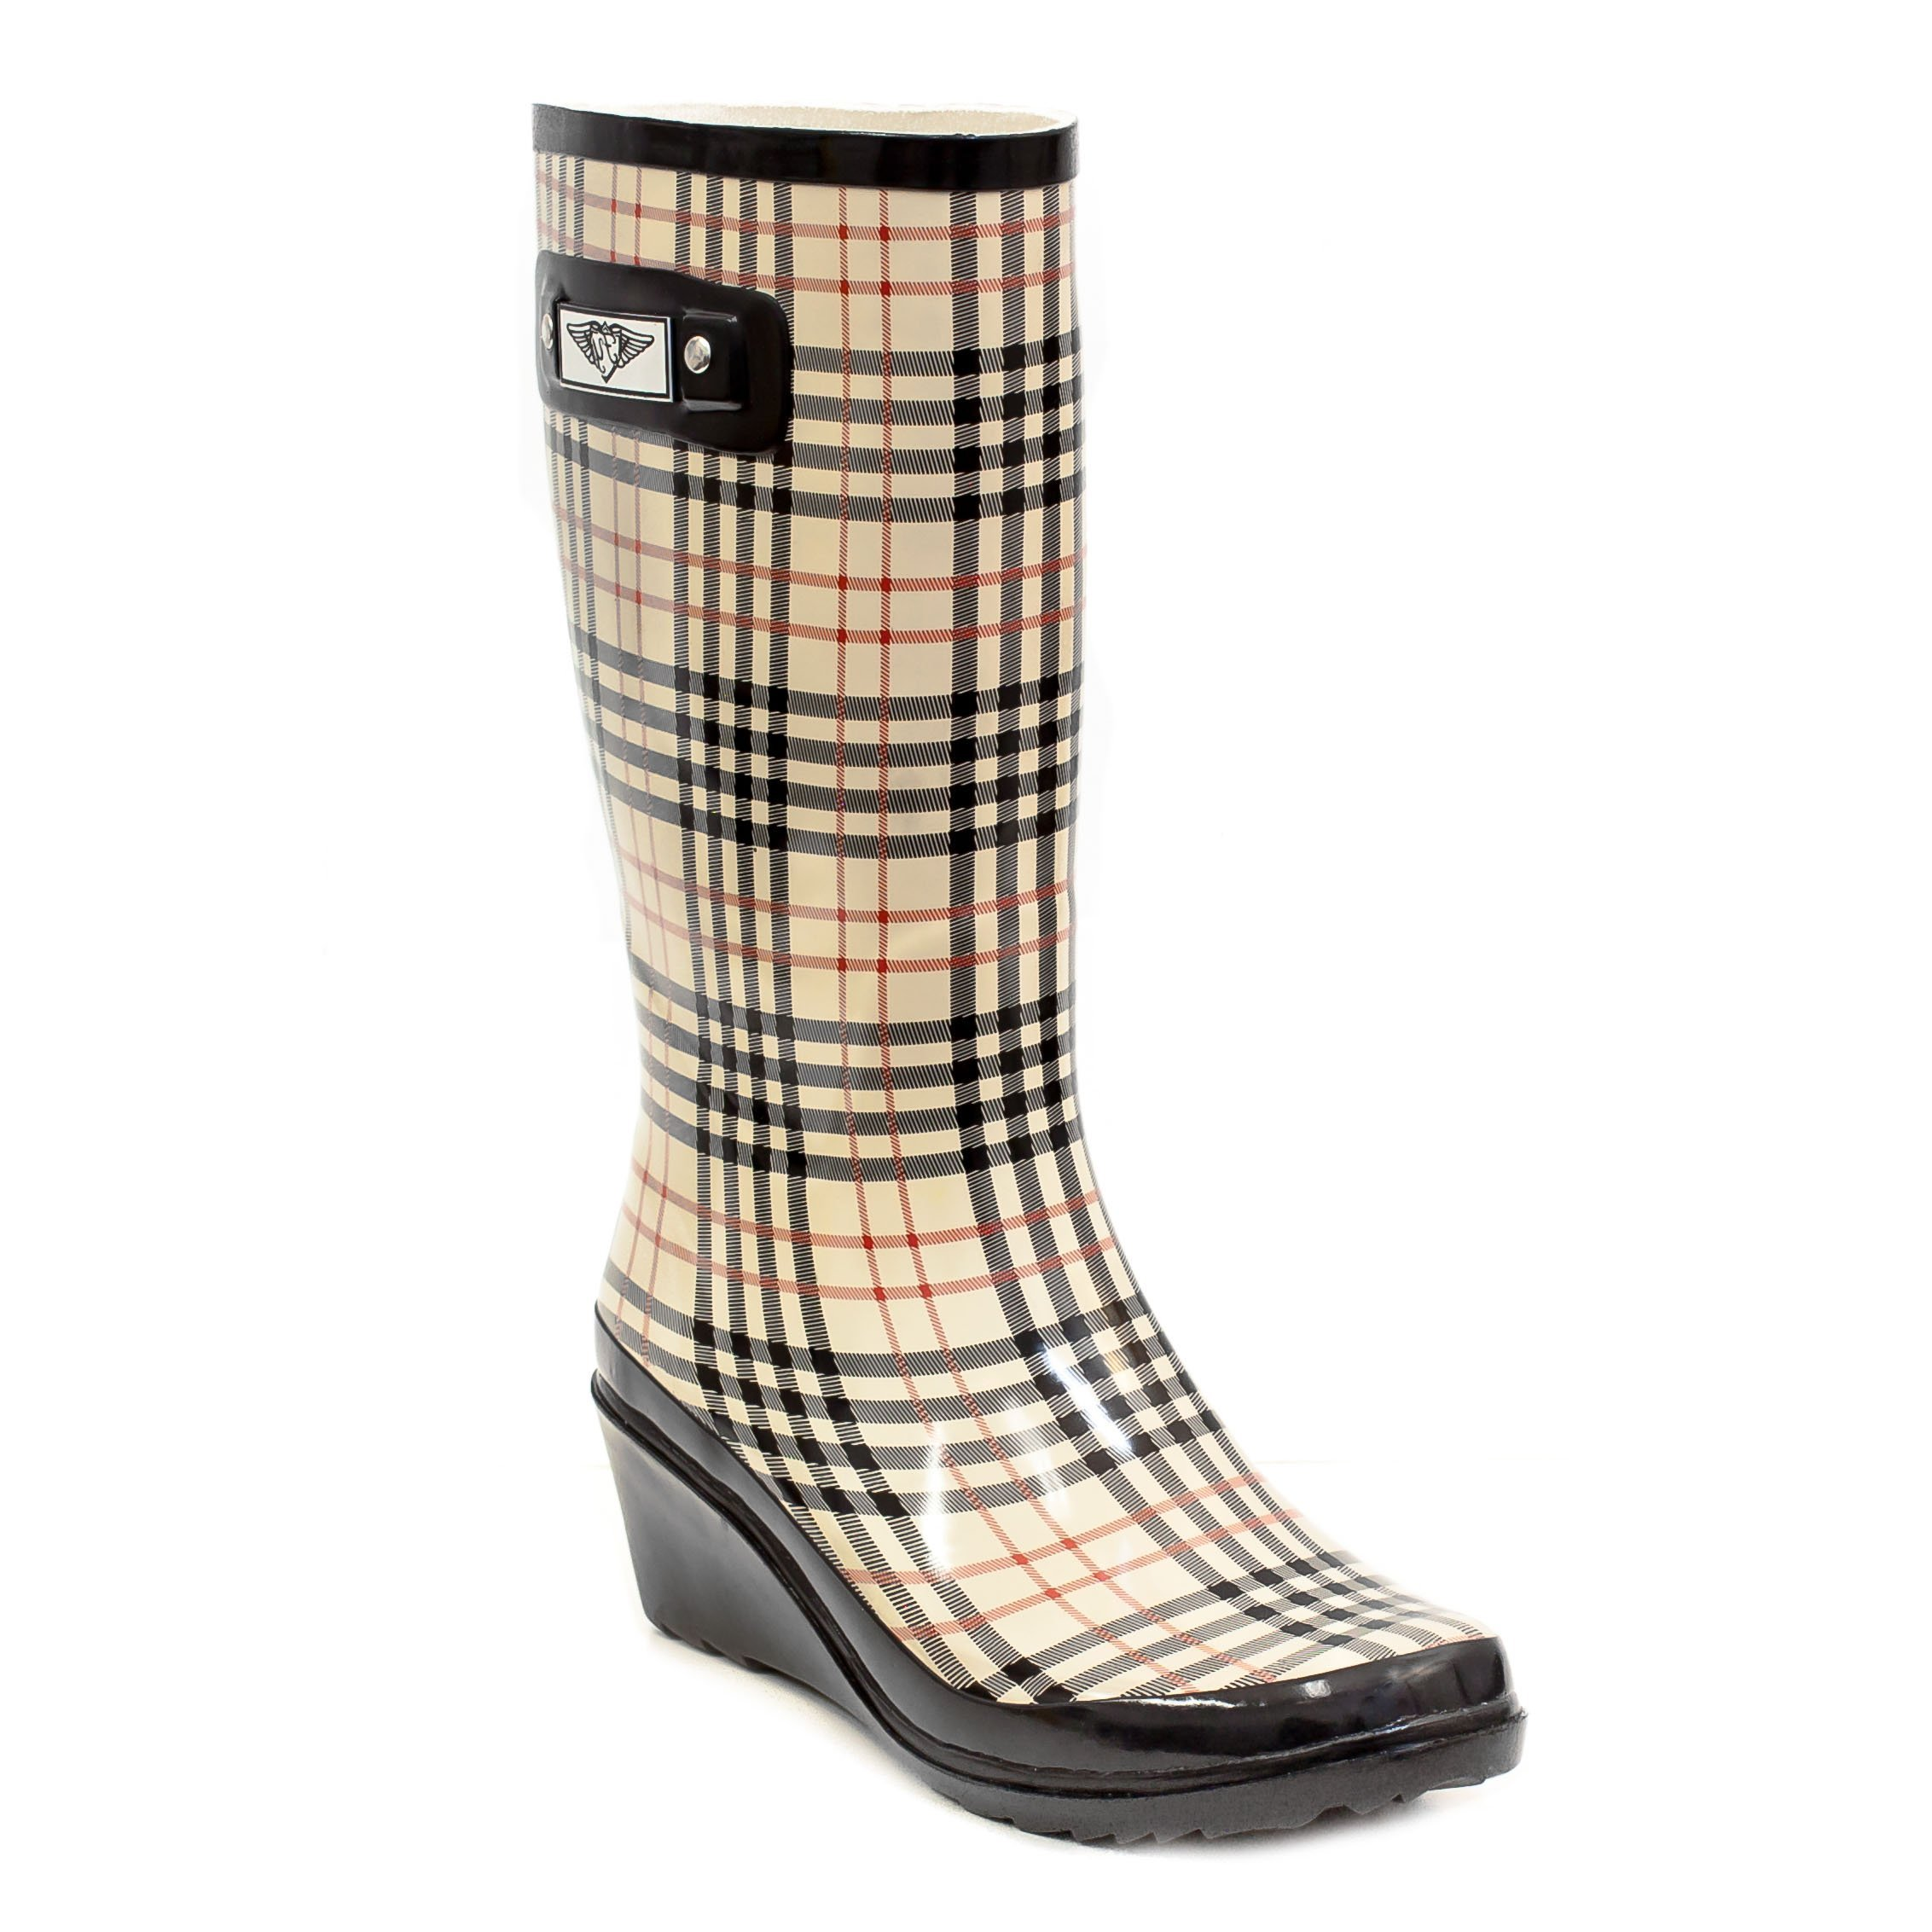 Forever Young Women Cotton Lined Rubber Rain Boots w/Wedge Heel (Checkers Plaid,6)